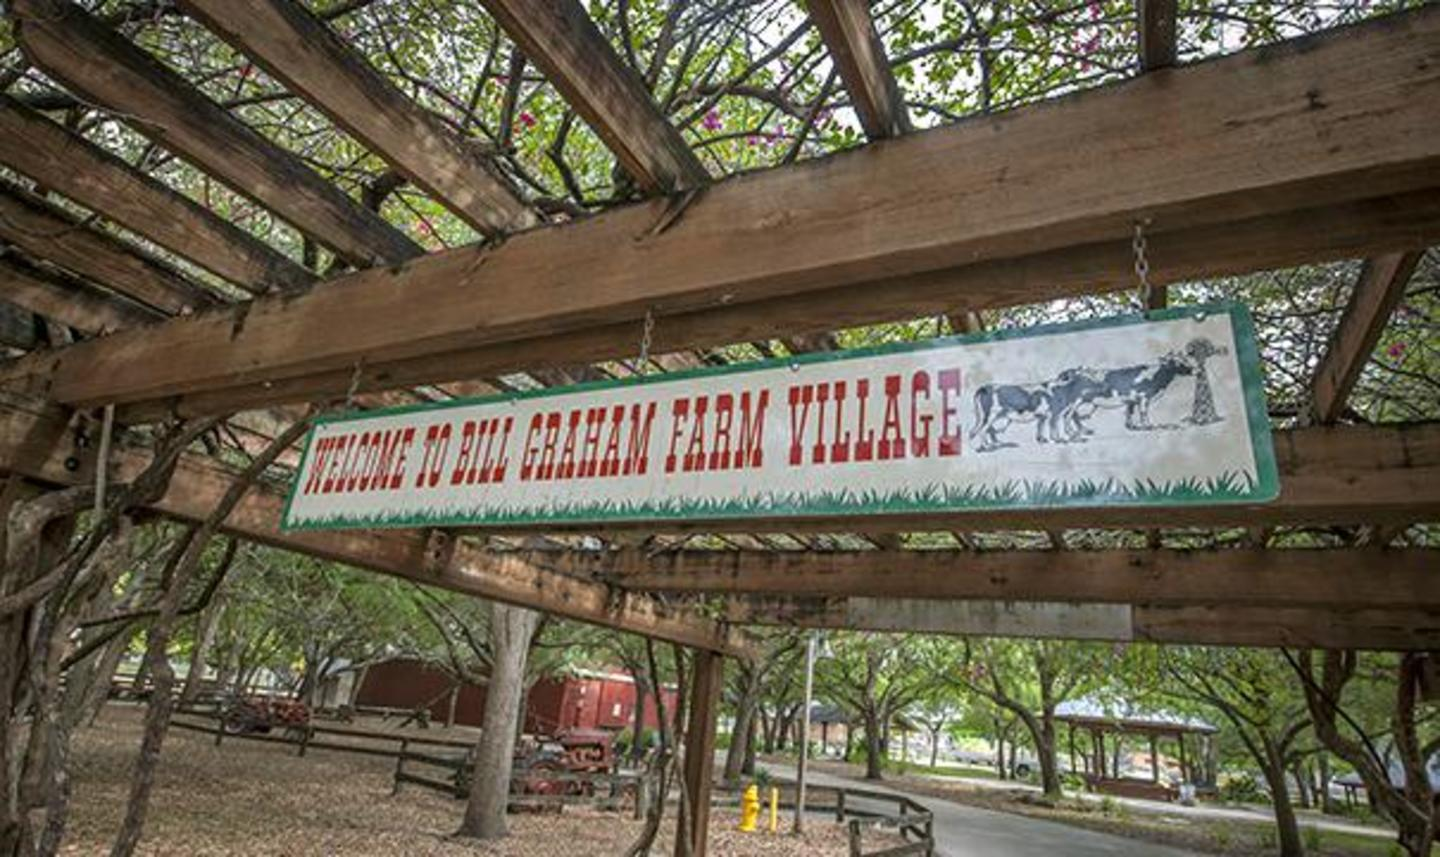 Farm Village Welcome Sign